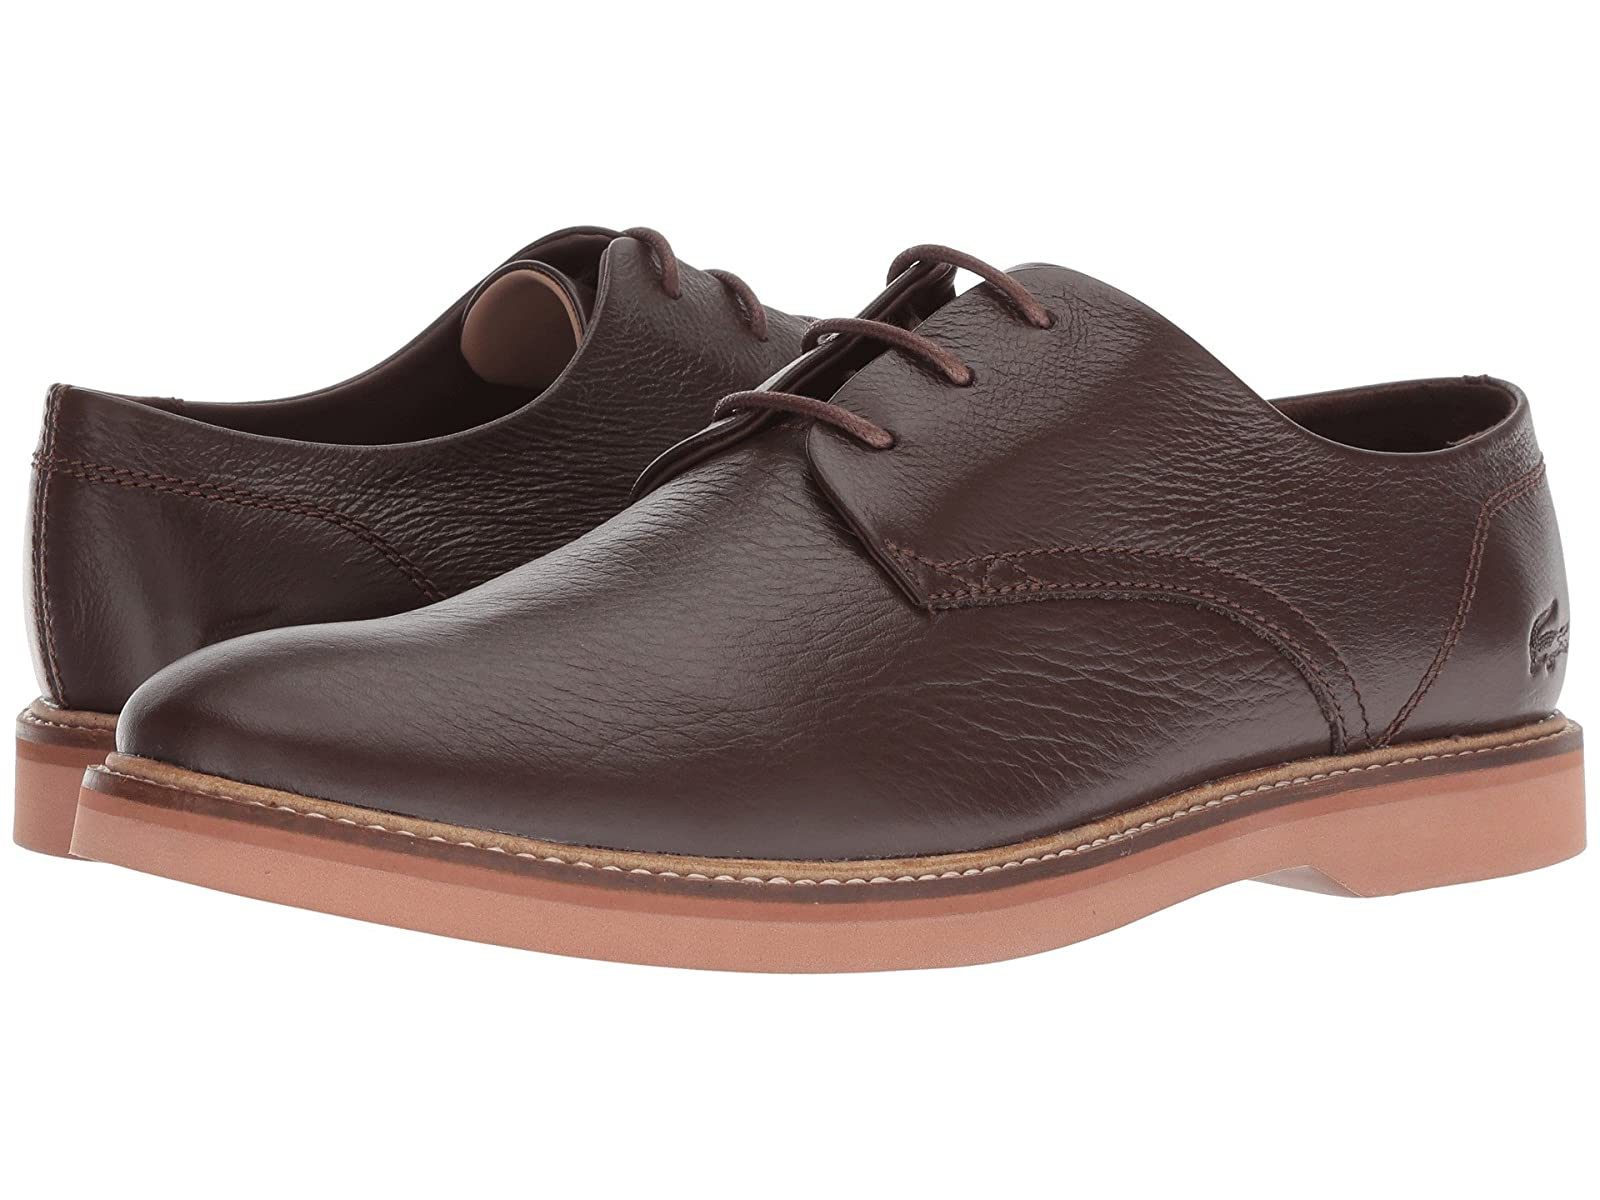 Lacoste Sherbrooke 318 1Atmospheric grades have affordable shoes